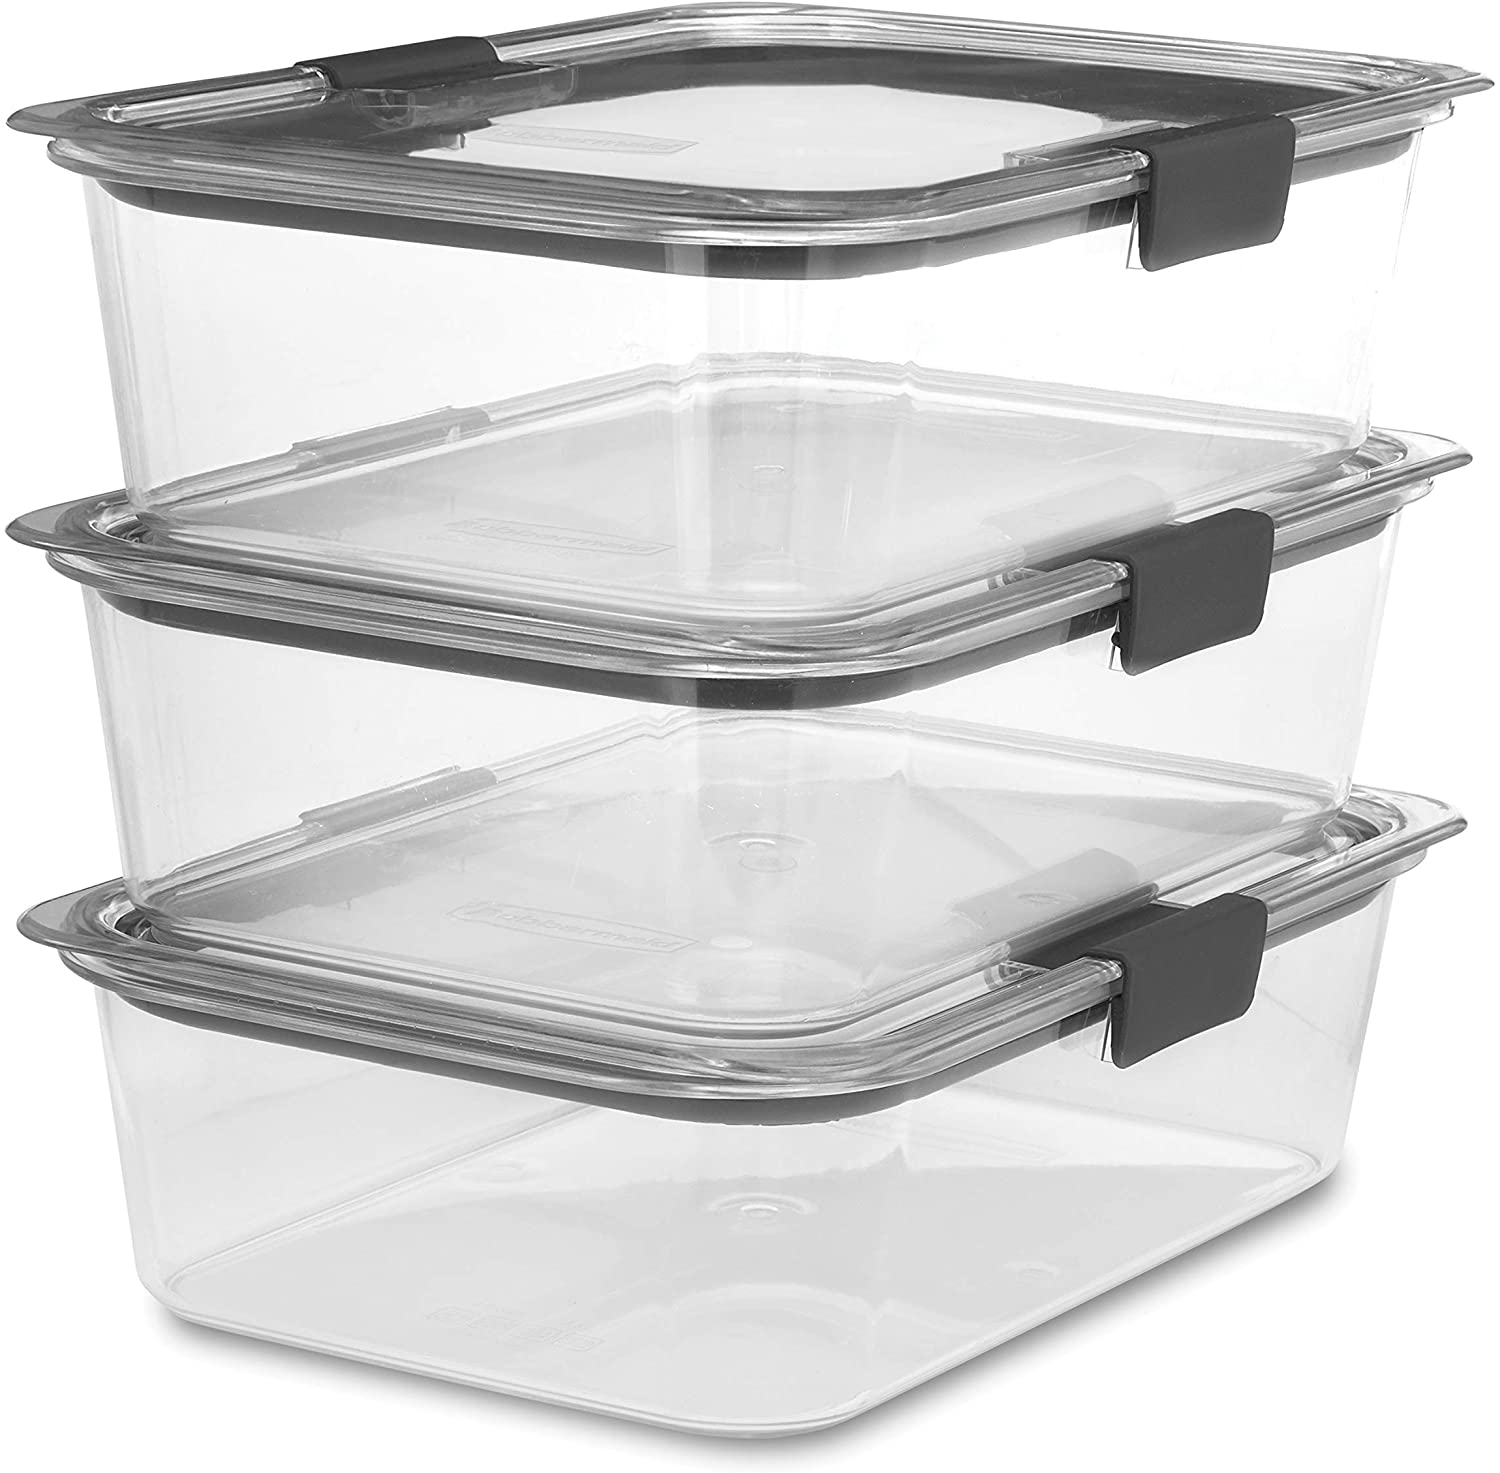 freeze-safe food storage container to freeze leftover bread